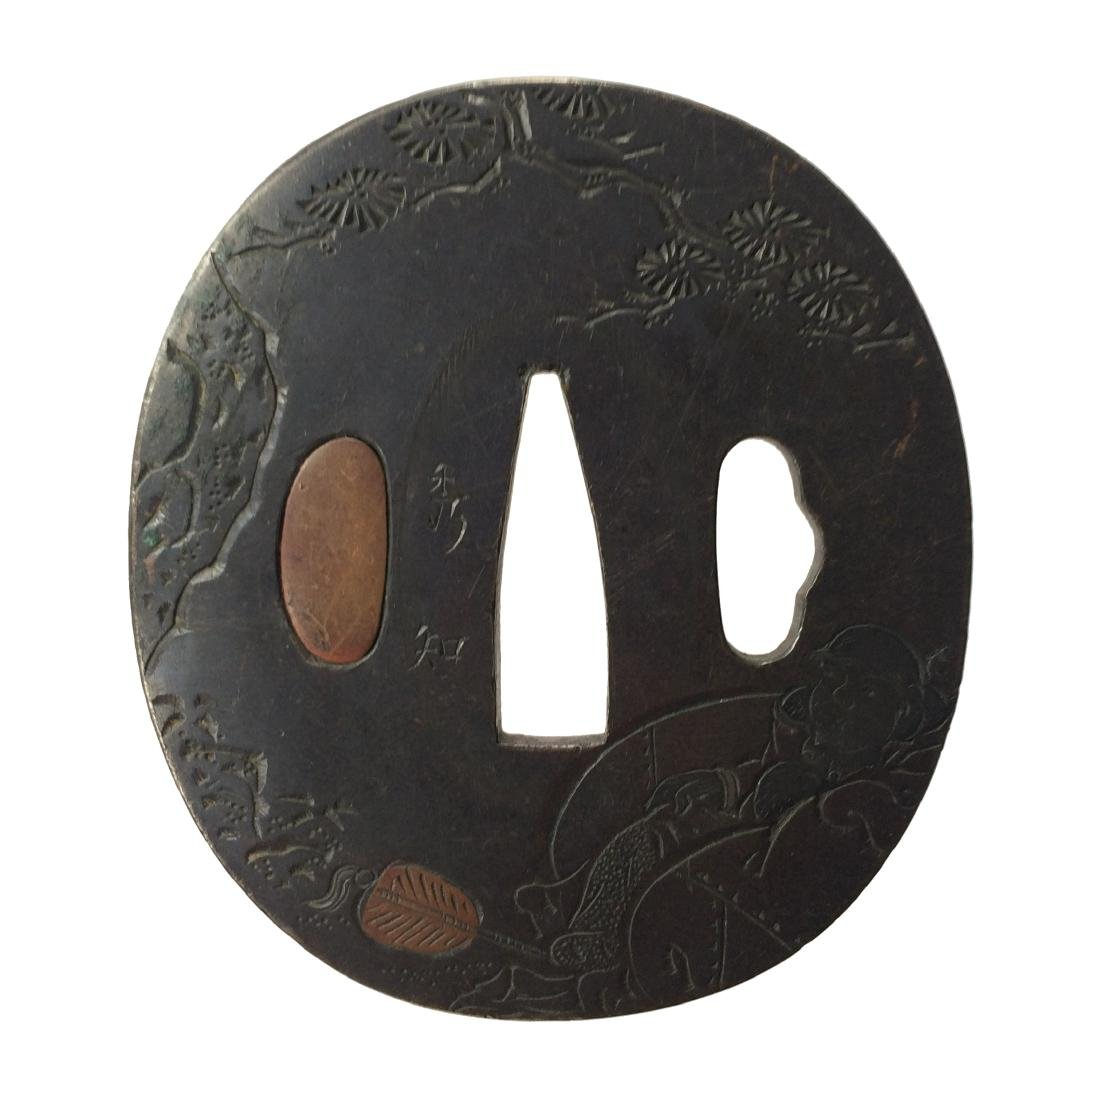 Signed kinko tsuba with katakiribori carving and brass